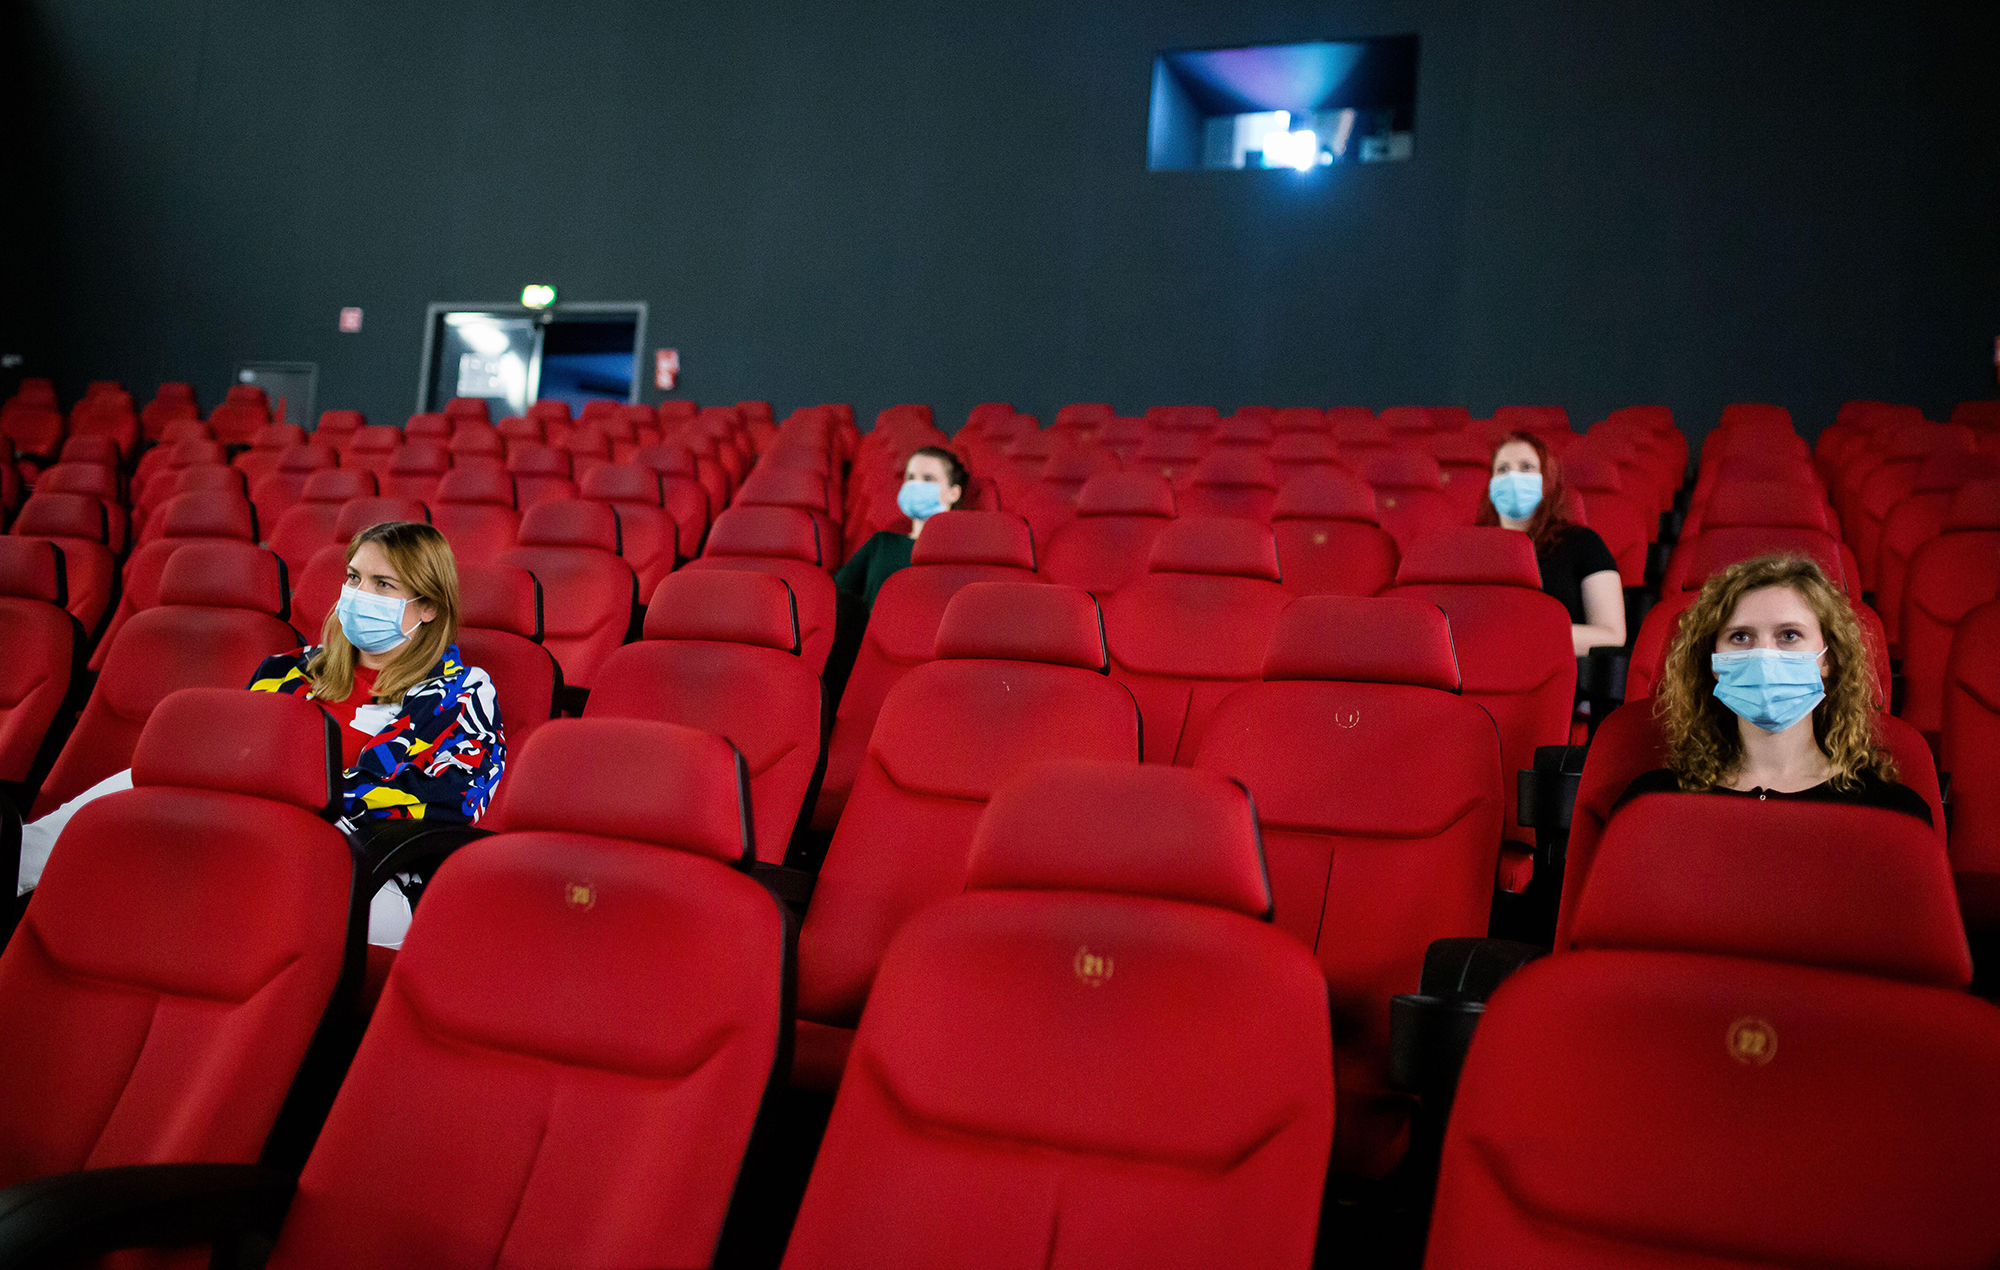 How will social distancing work in cinemas? Is it safe to return?